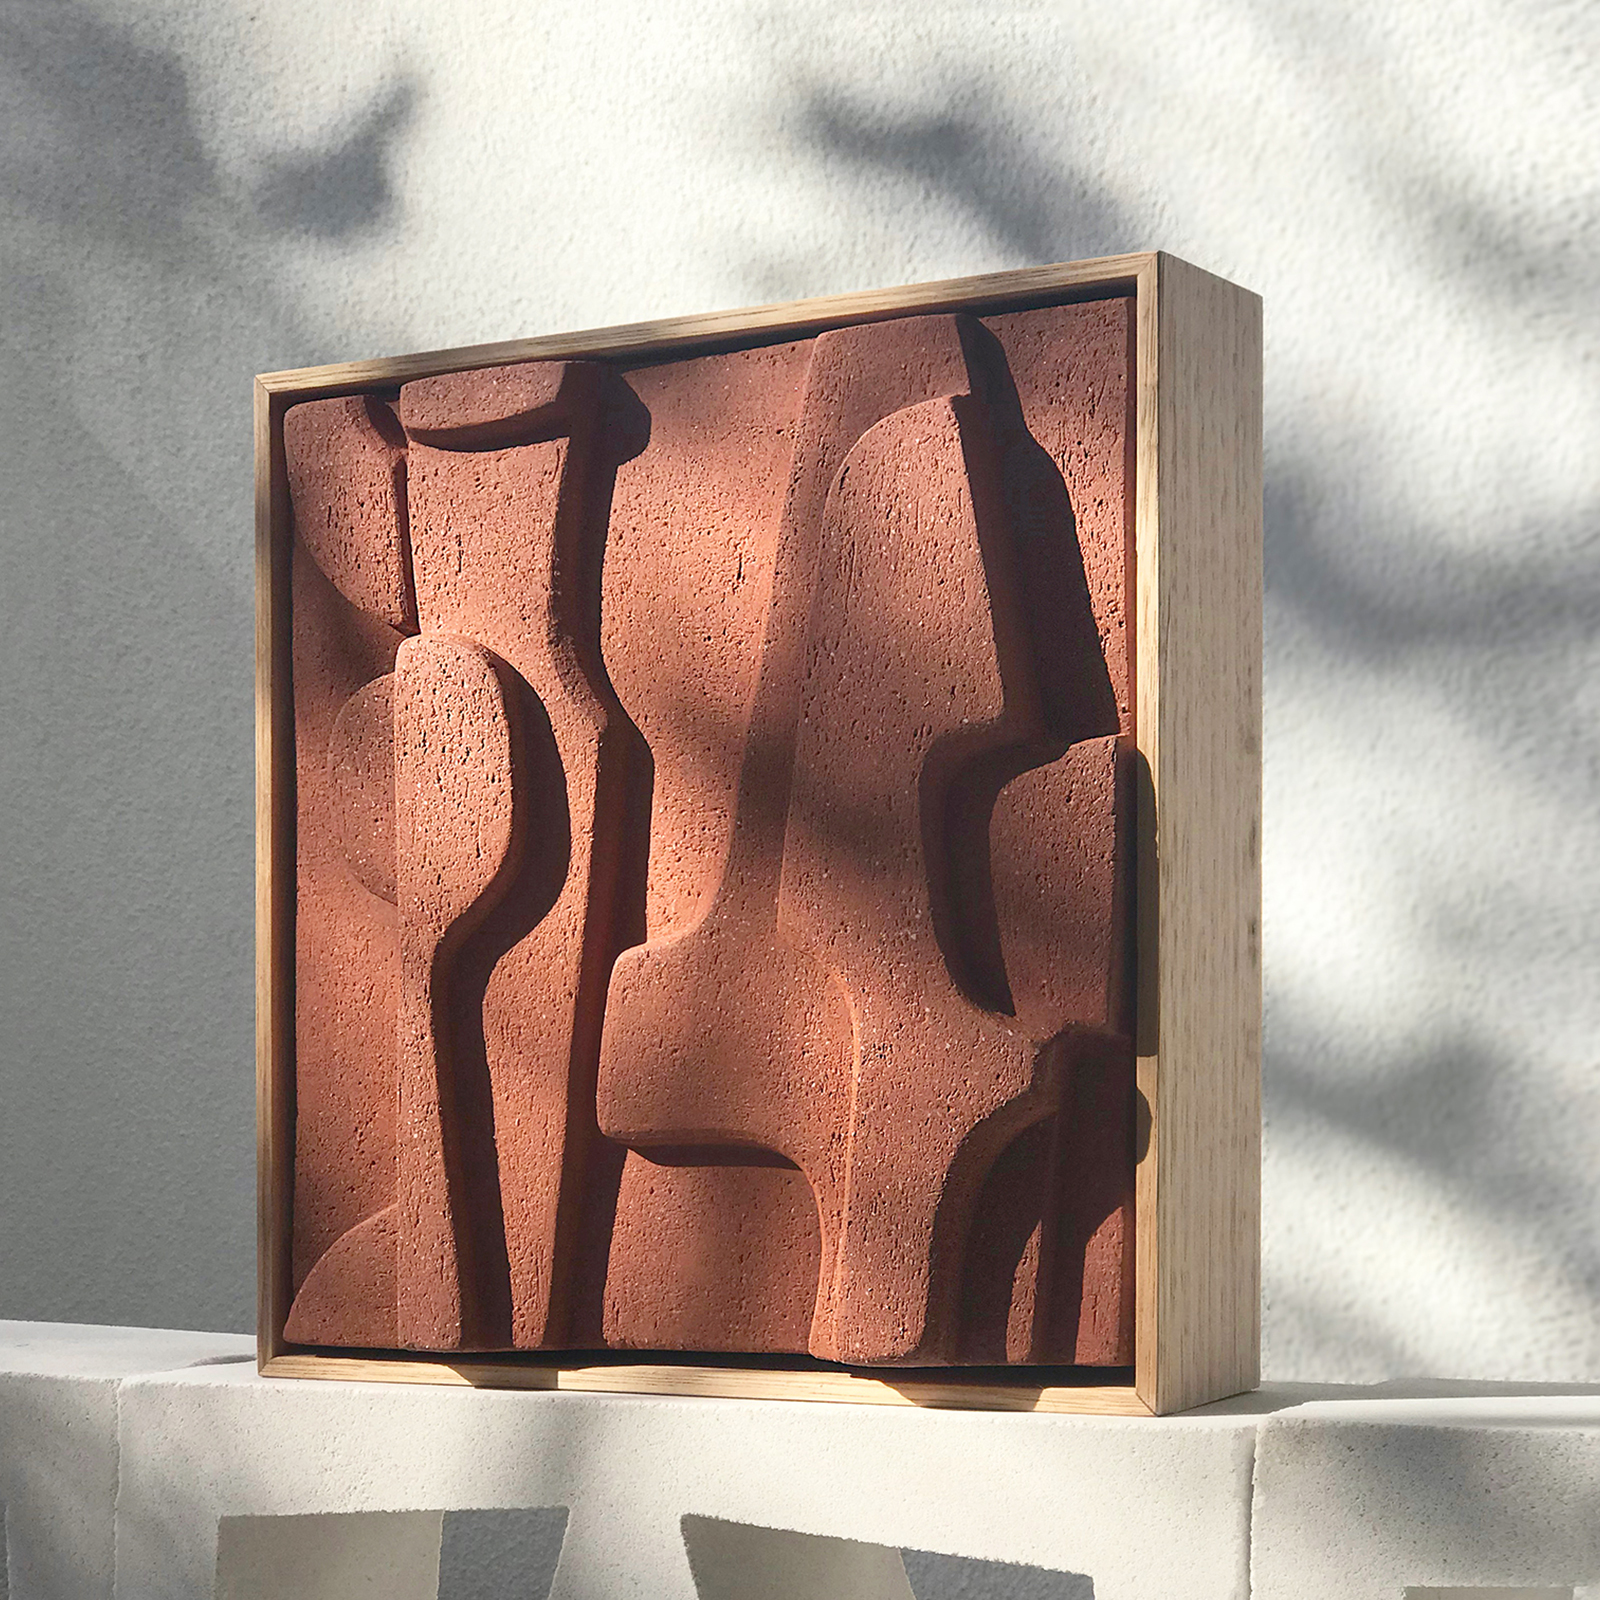 Small Abstract Relief Tile In Terracotta And Framed In Oak By Jan Vogelpoel Hero